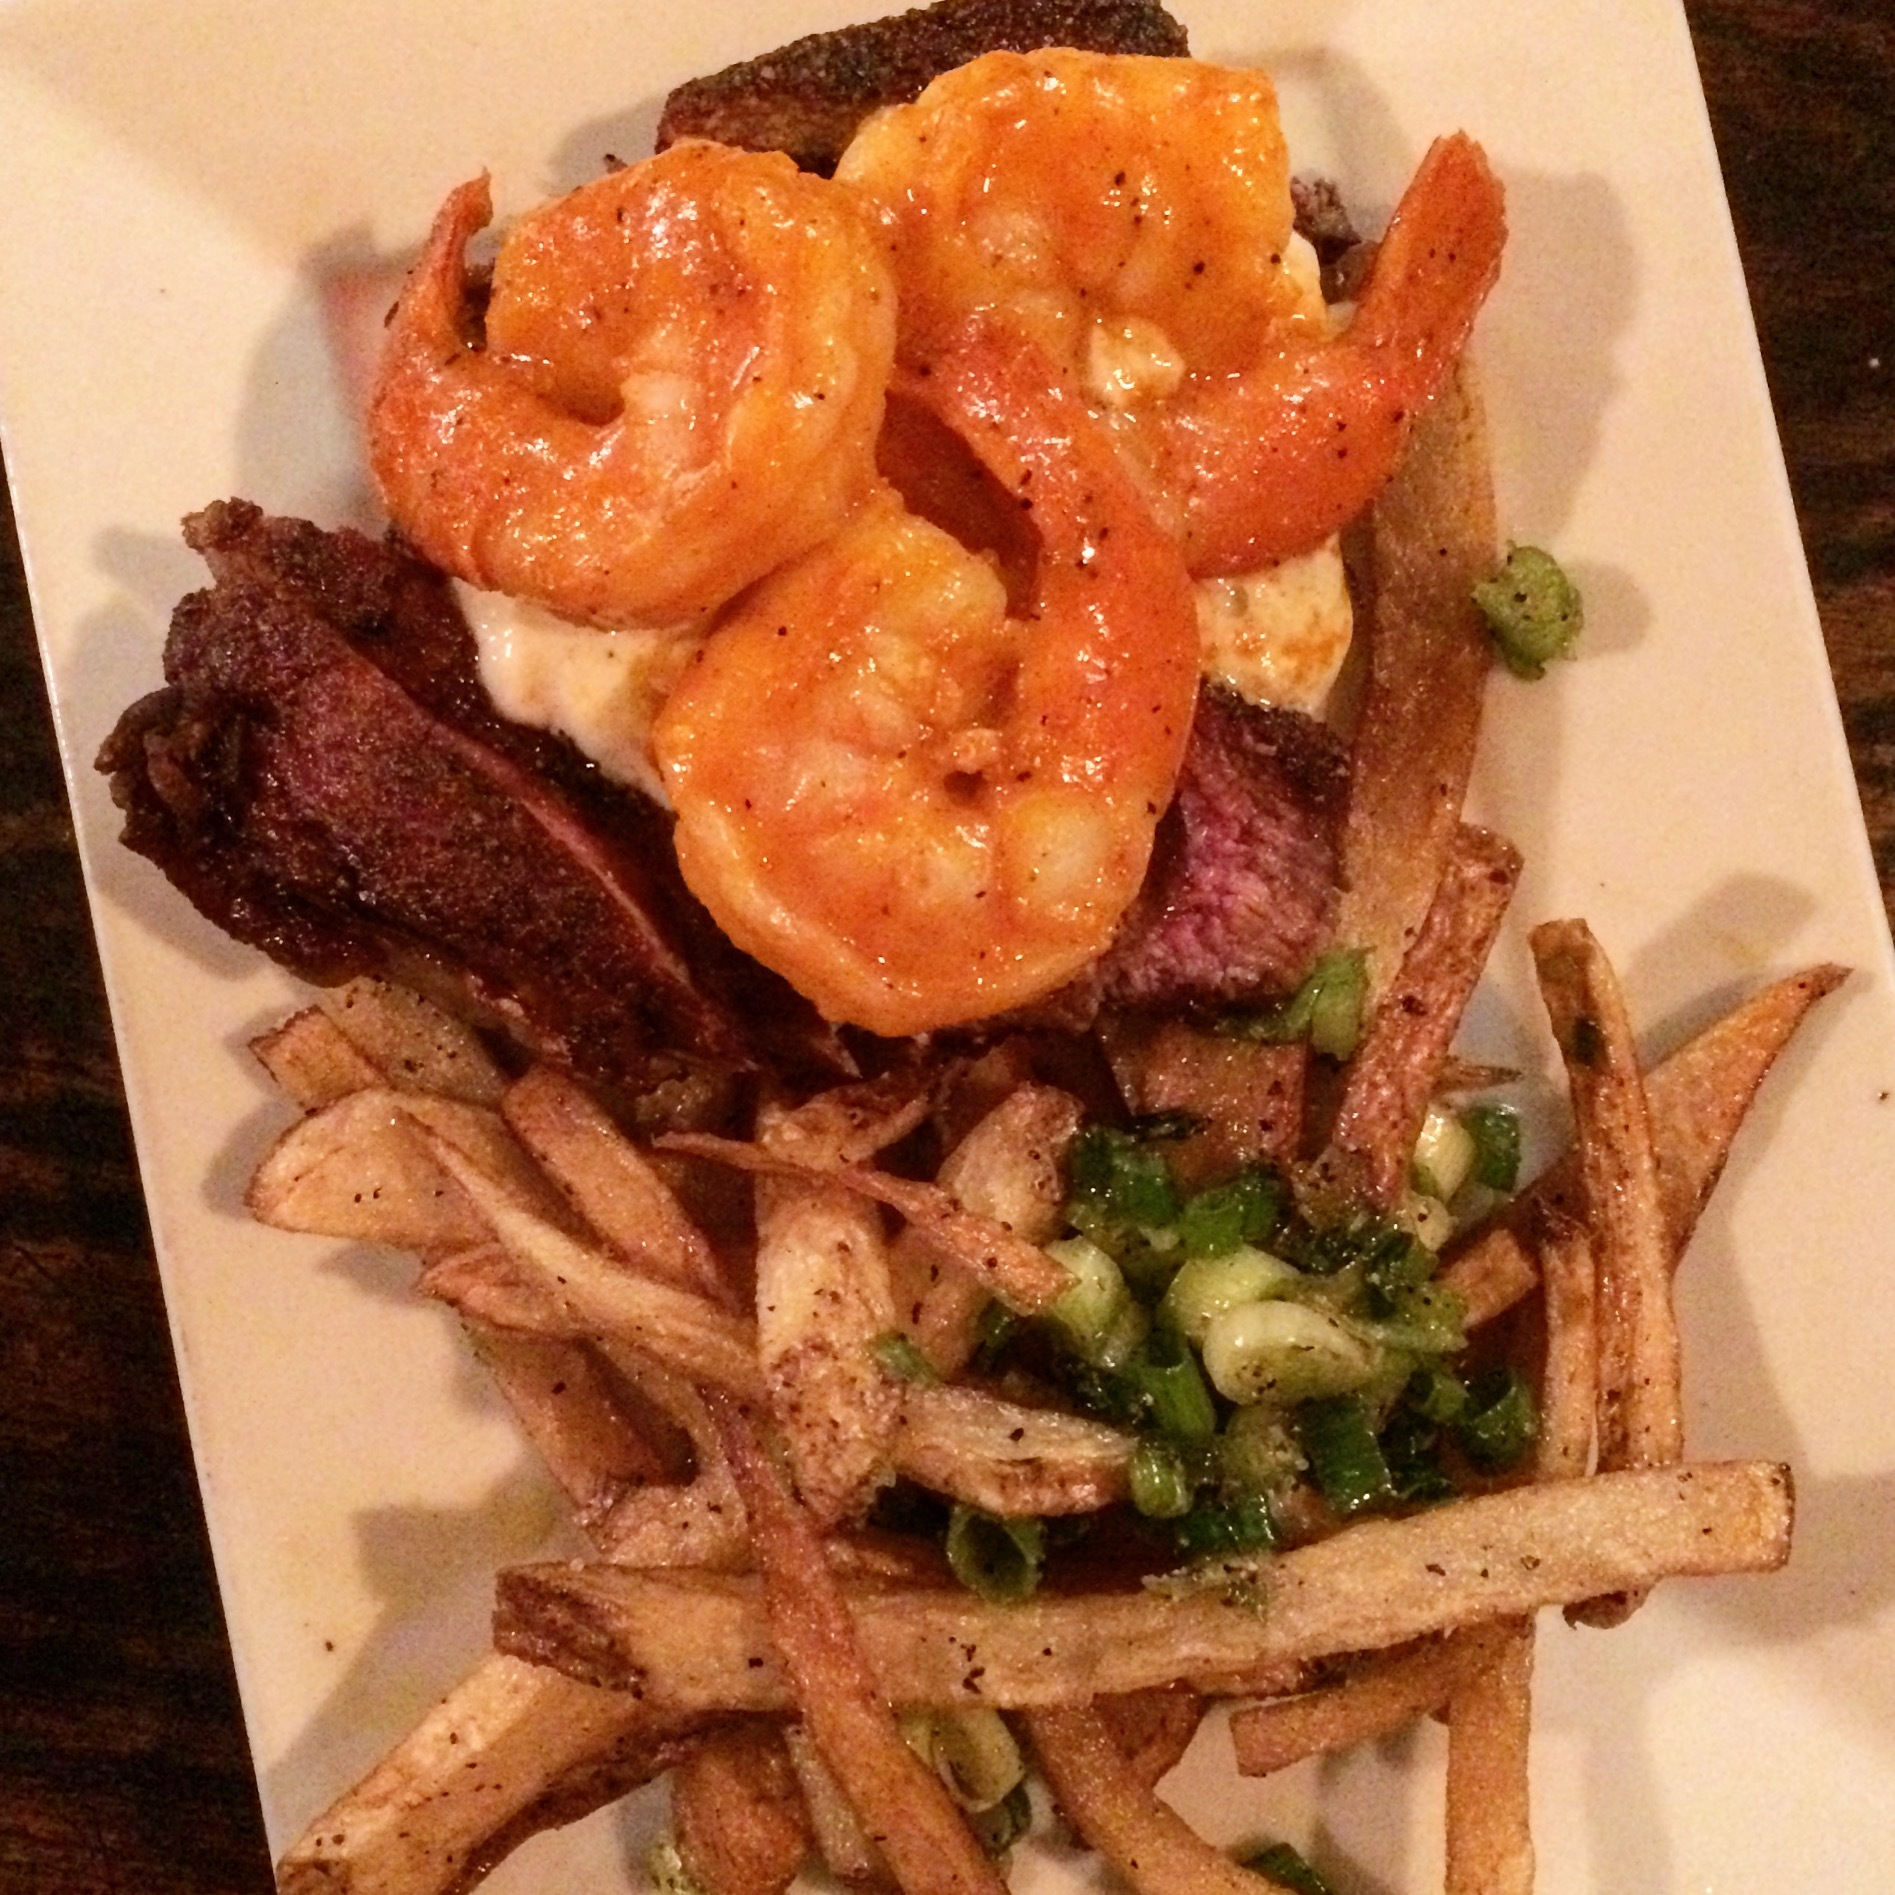 Surf and turf, steak, shrimp, seafood, fries, supper, small plates, st. john's